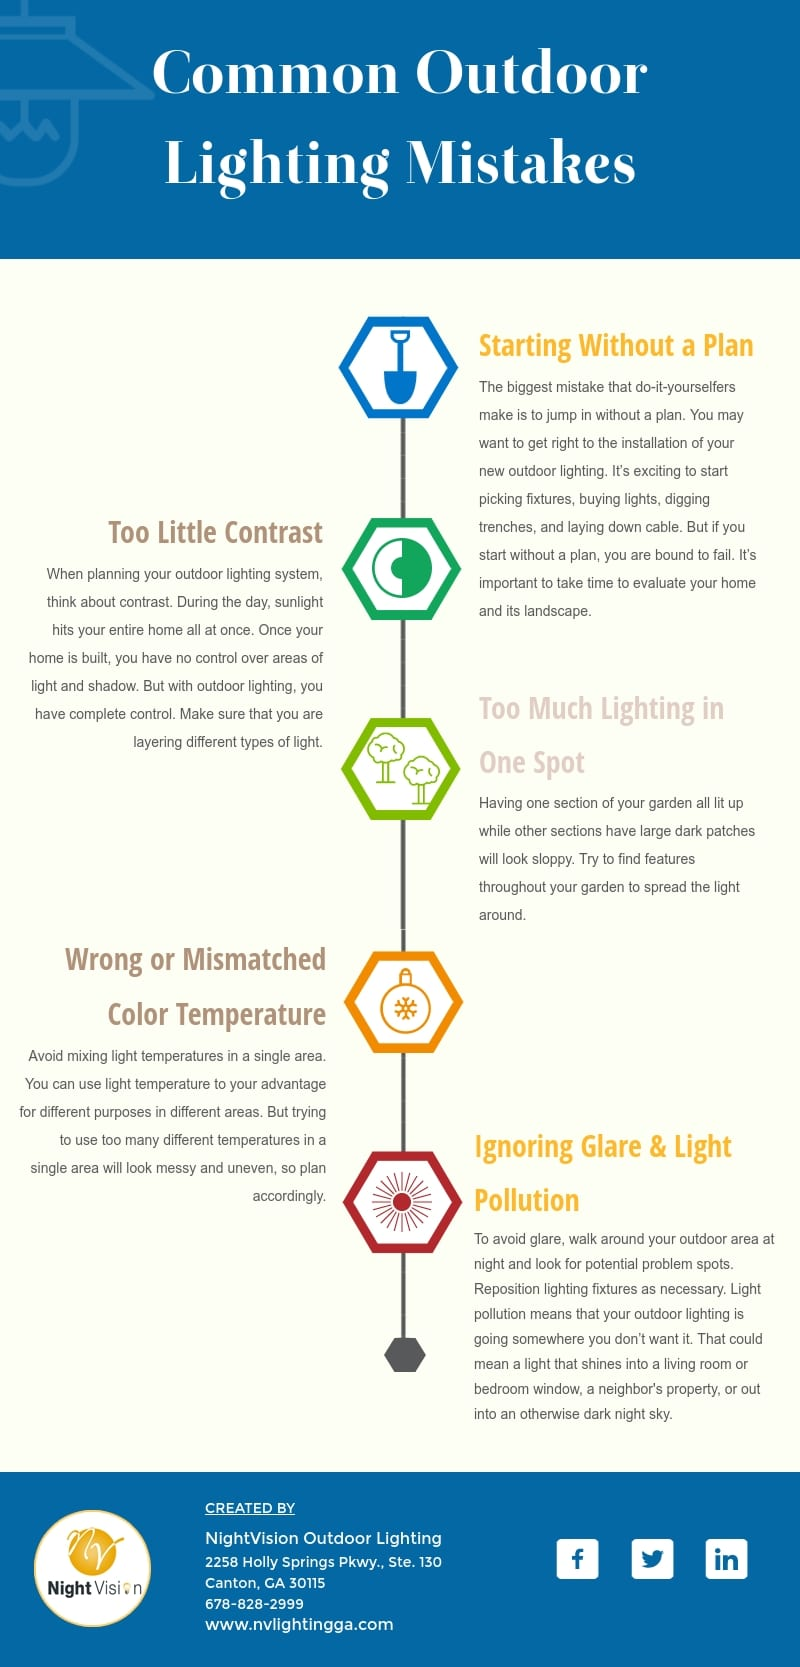 Common Outdoor Lighting Mistakes and How to Avoid Them [infographic]